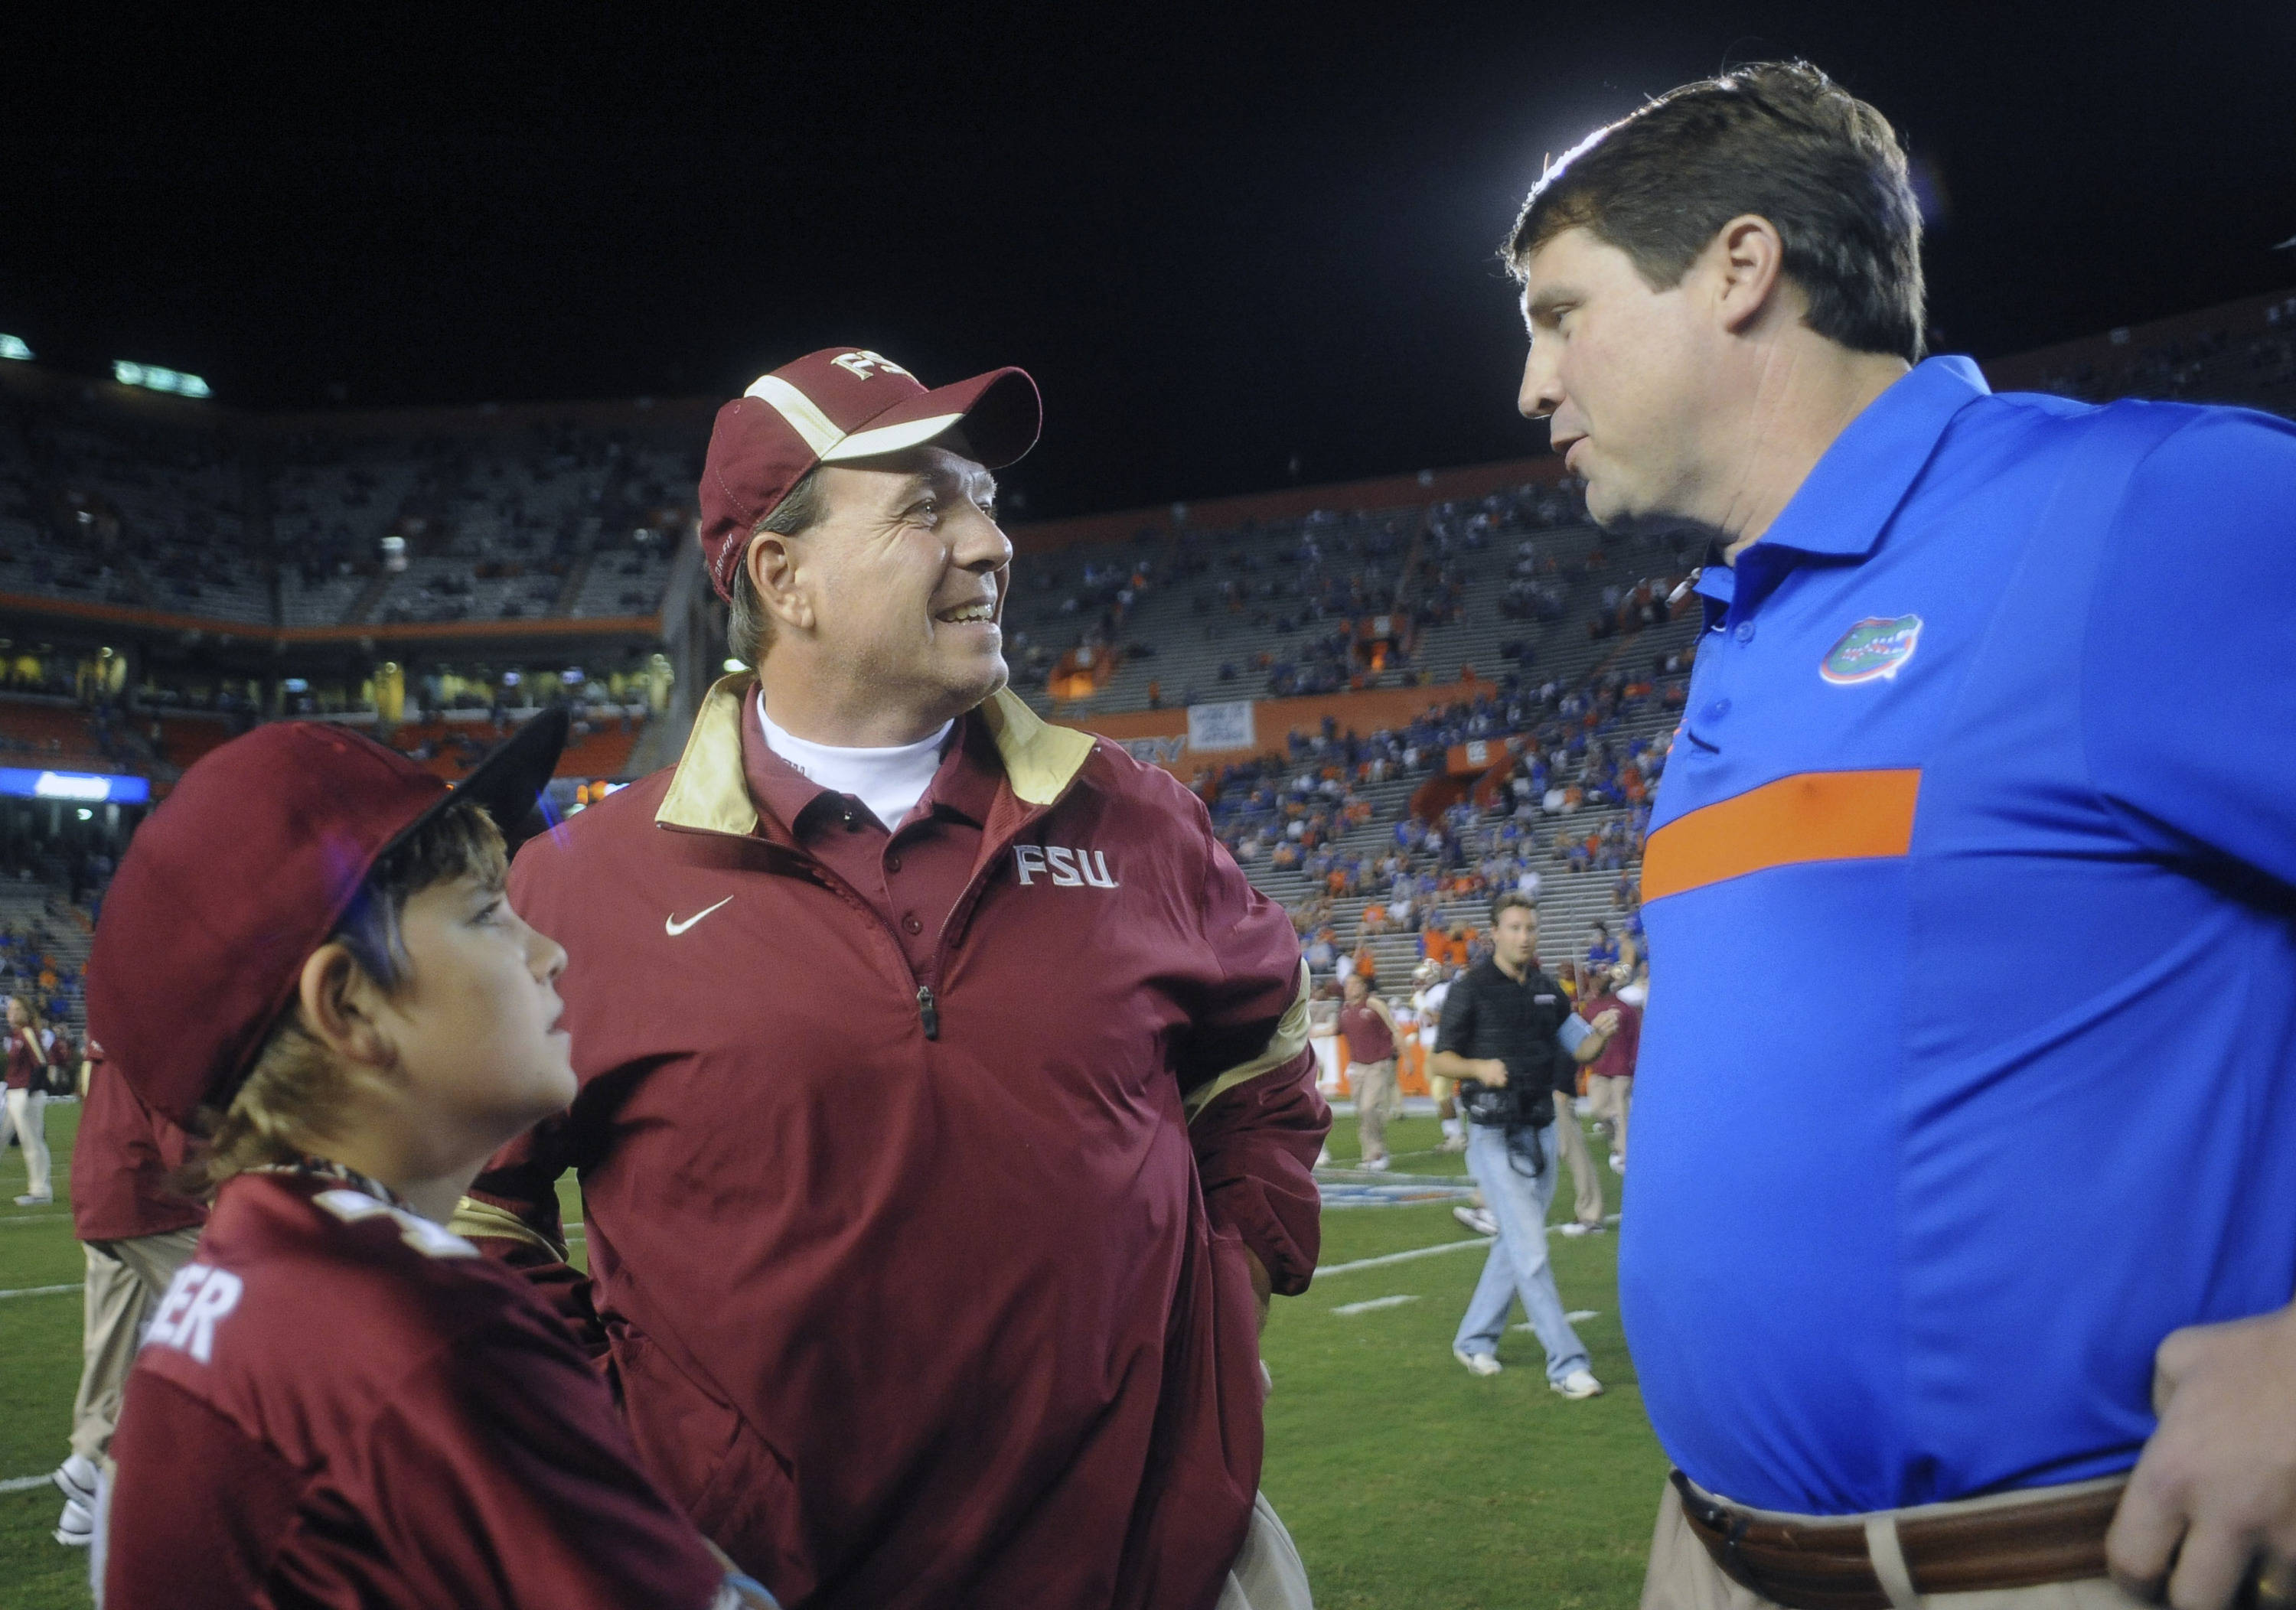 Florida head coach Will Muschamp, right, greets Florida State head coach Jimbo Fisher, center, and son Trey Fisher before an NCAA college football game on Saturday, Nov. 26, 2011, in Gainesville, Fla. (AP Photo/Phil Sandlin)